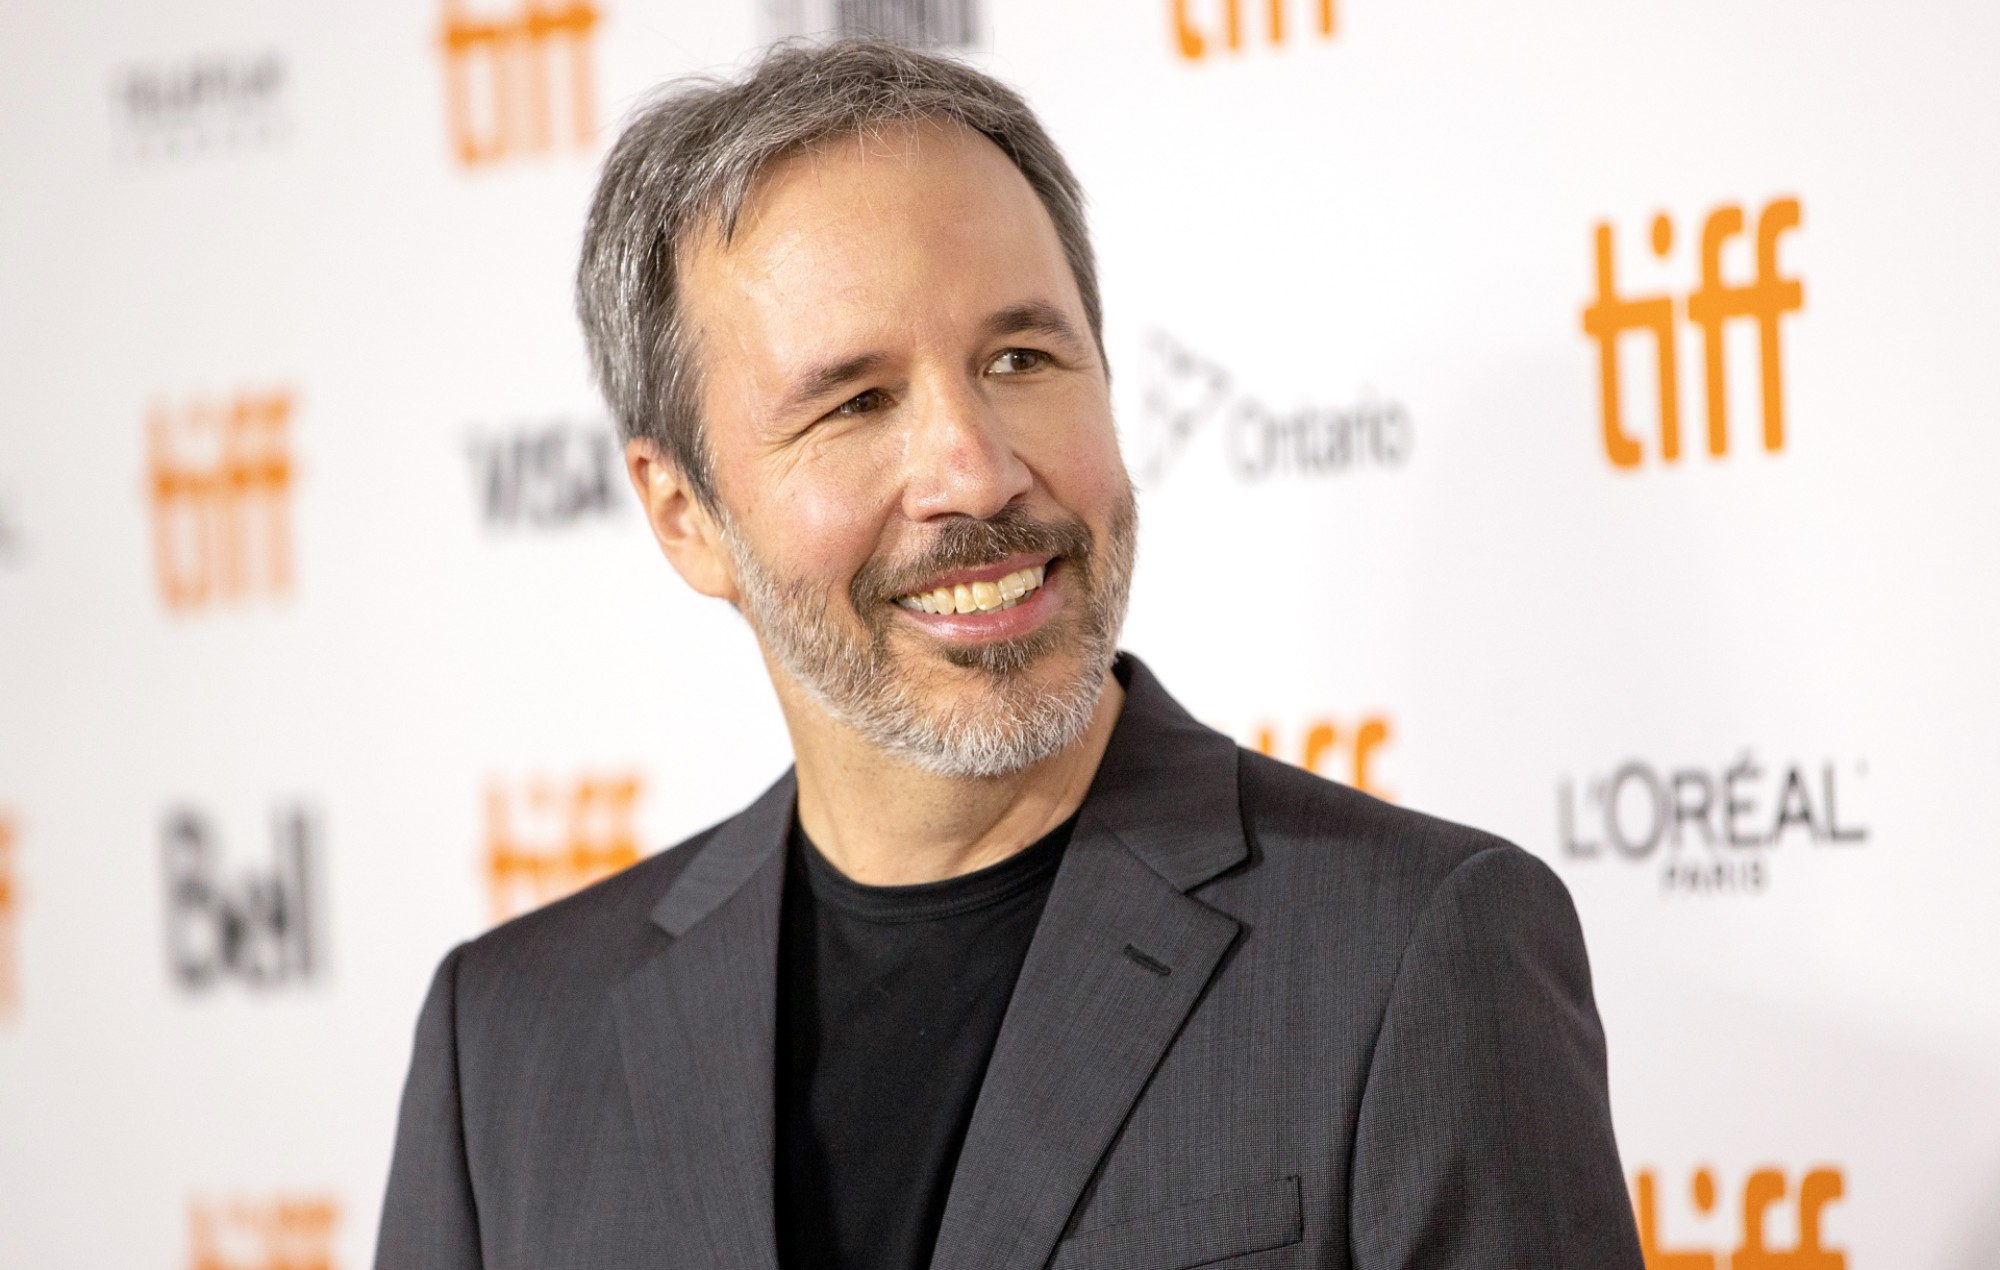 Marvel movies are nothing more than a cut and paste of others: Denis Villeneuve